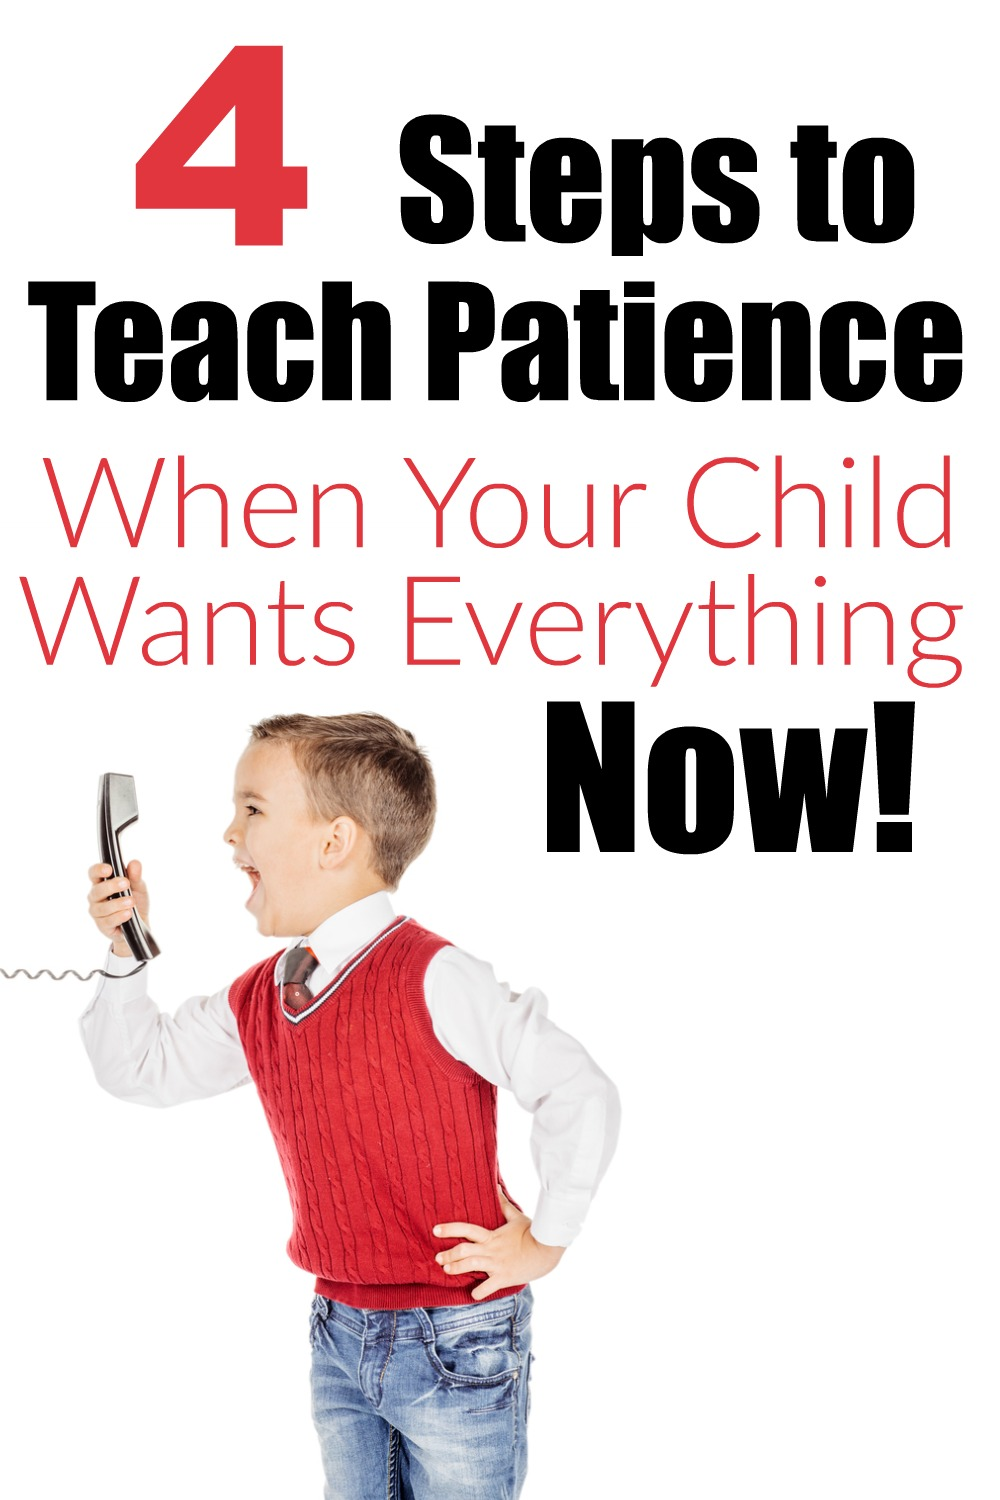 4 steps to teach patience to your child. Patience is difficult to teach because we have to show them ourselves.